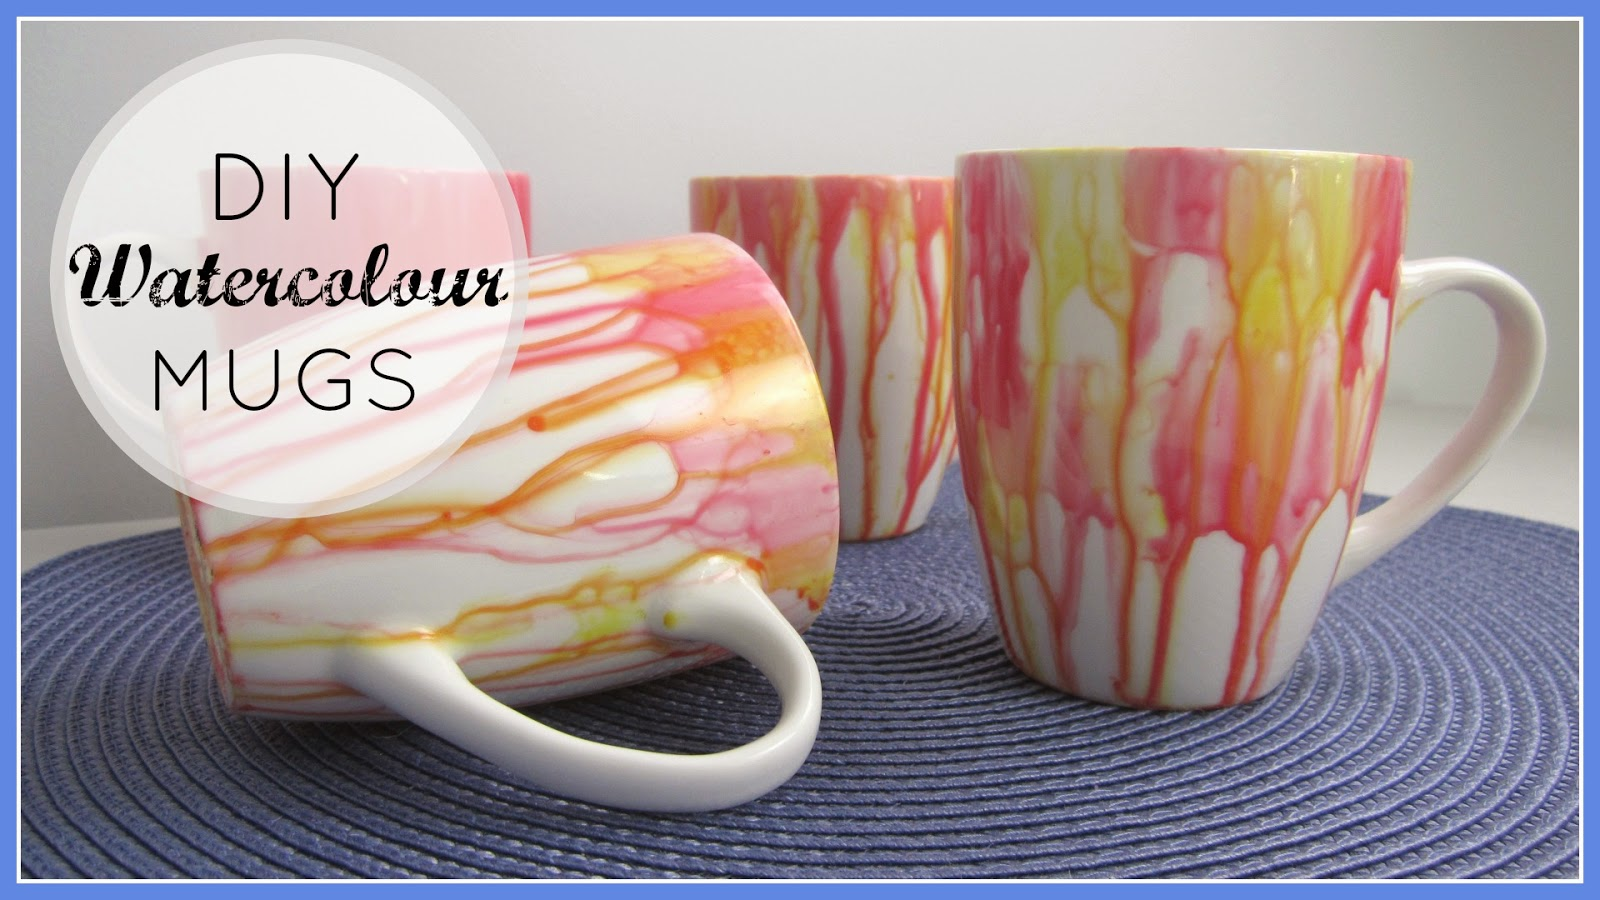 Stylenovice diy decor gift watercolour mugs for How to paint ceramic mugs at home